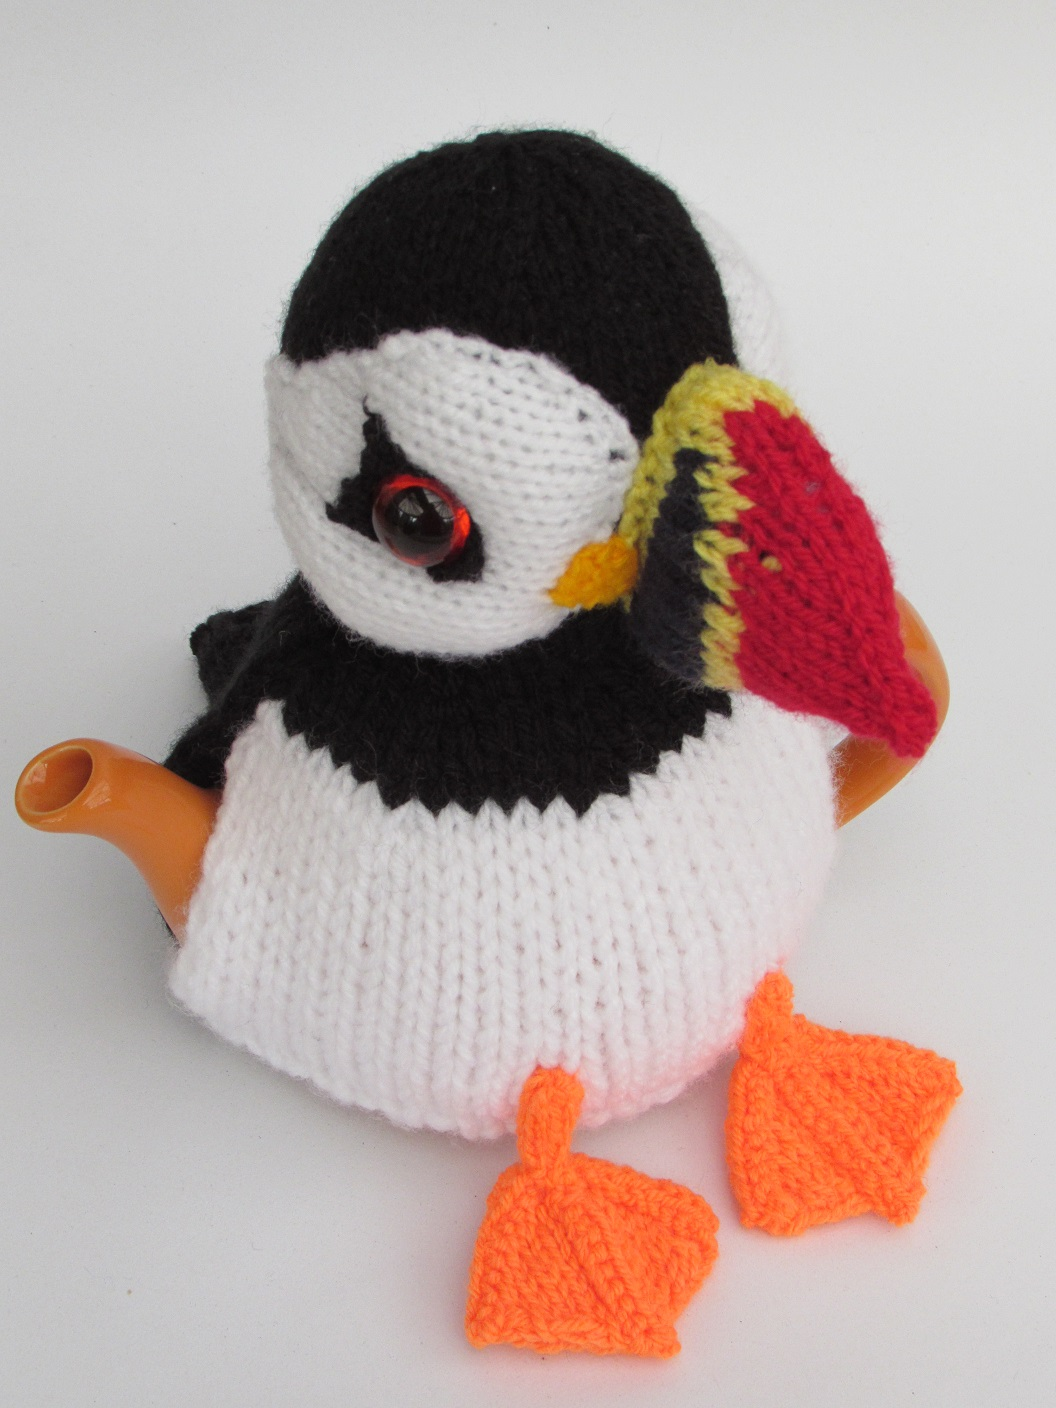 Puffin tea cosy knitting pattern